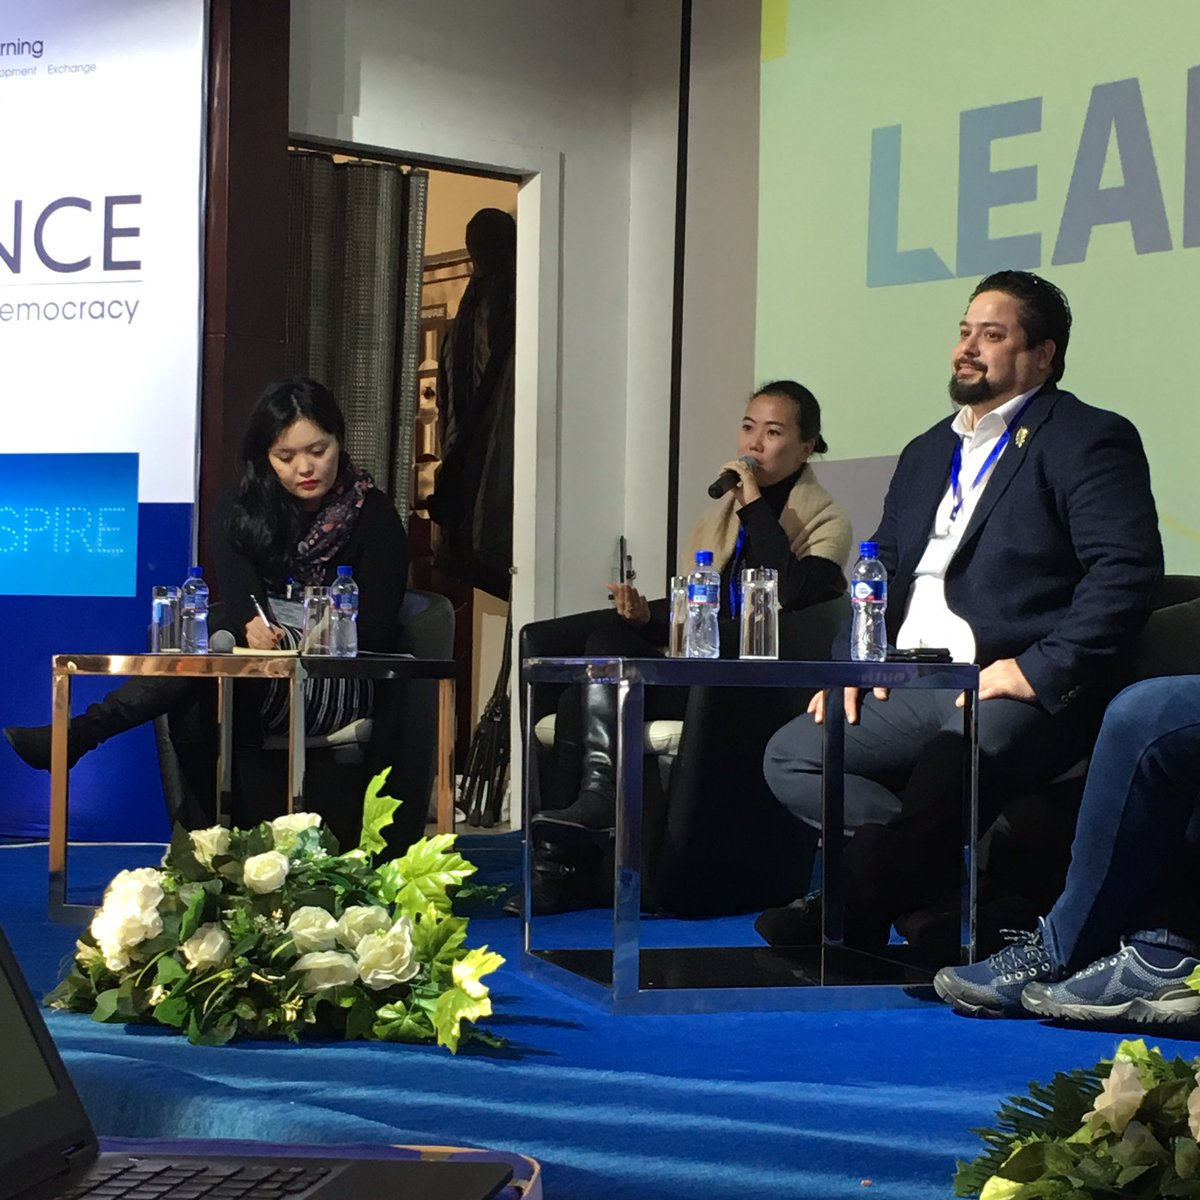 &quot;Take an inclusive approach to how you&#39;re a change maker&quot; @hulancka founder of @lhamourskincare at #LEADalliance Summit. #inclusion matters to #SocialEntrepreneurship <br>http://pic.twitter.com/6OMmqH2RkG